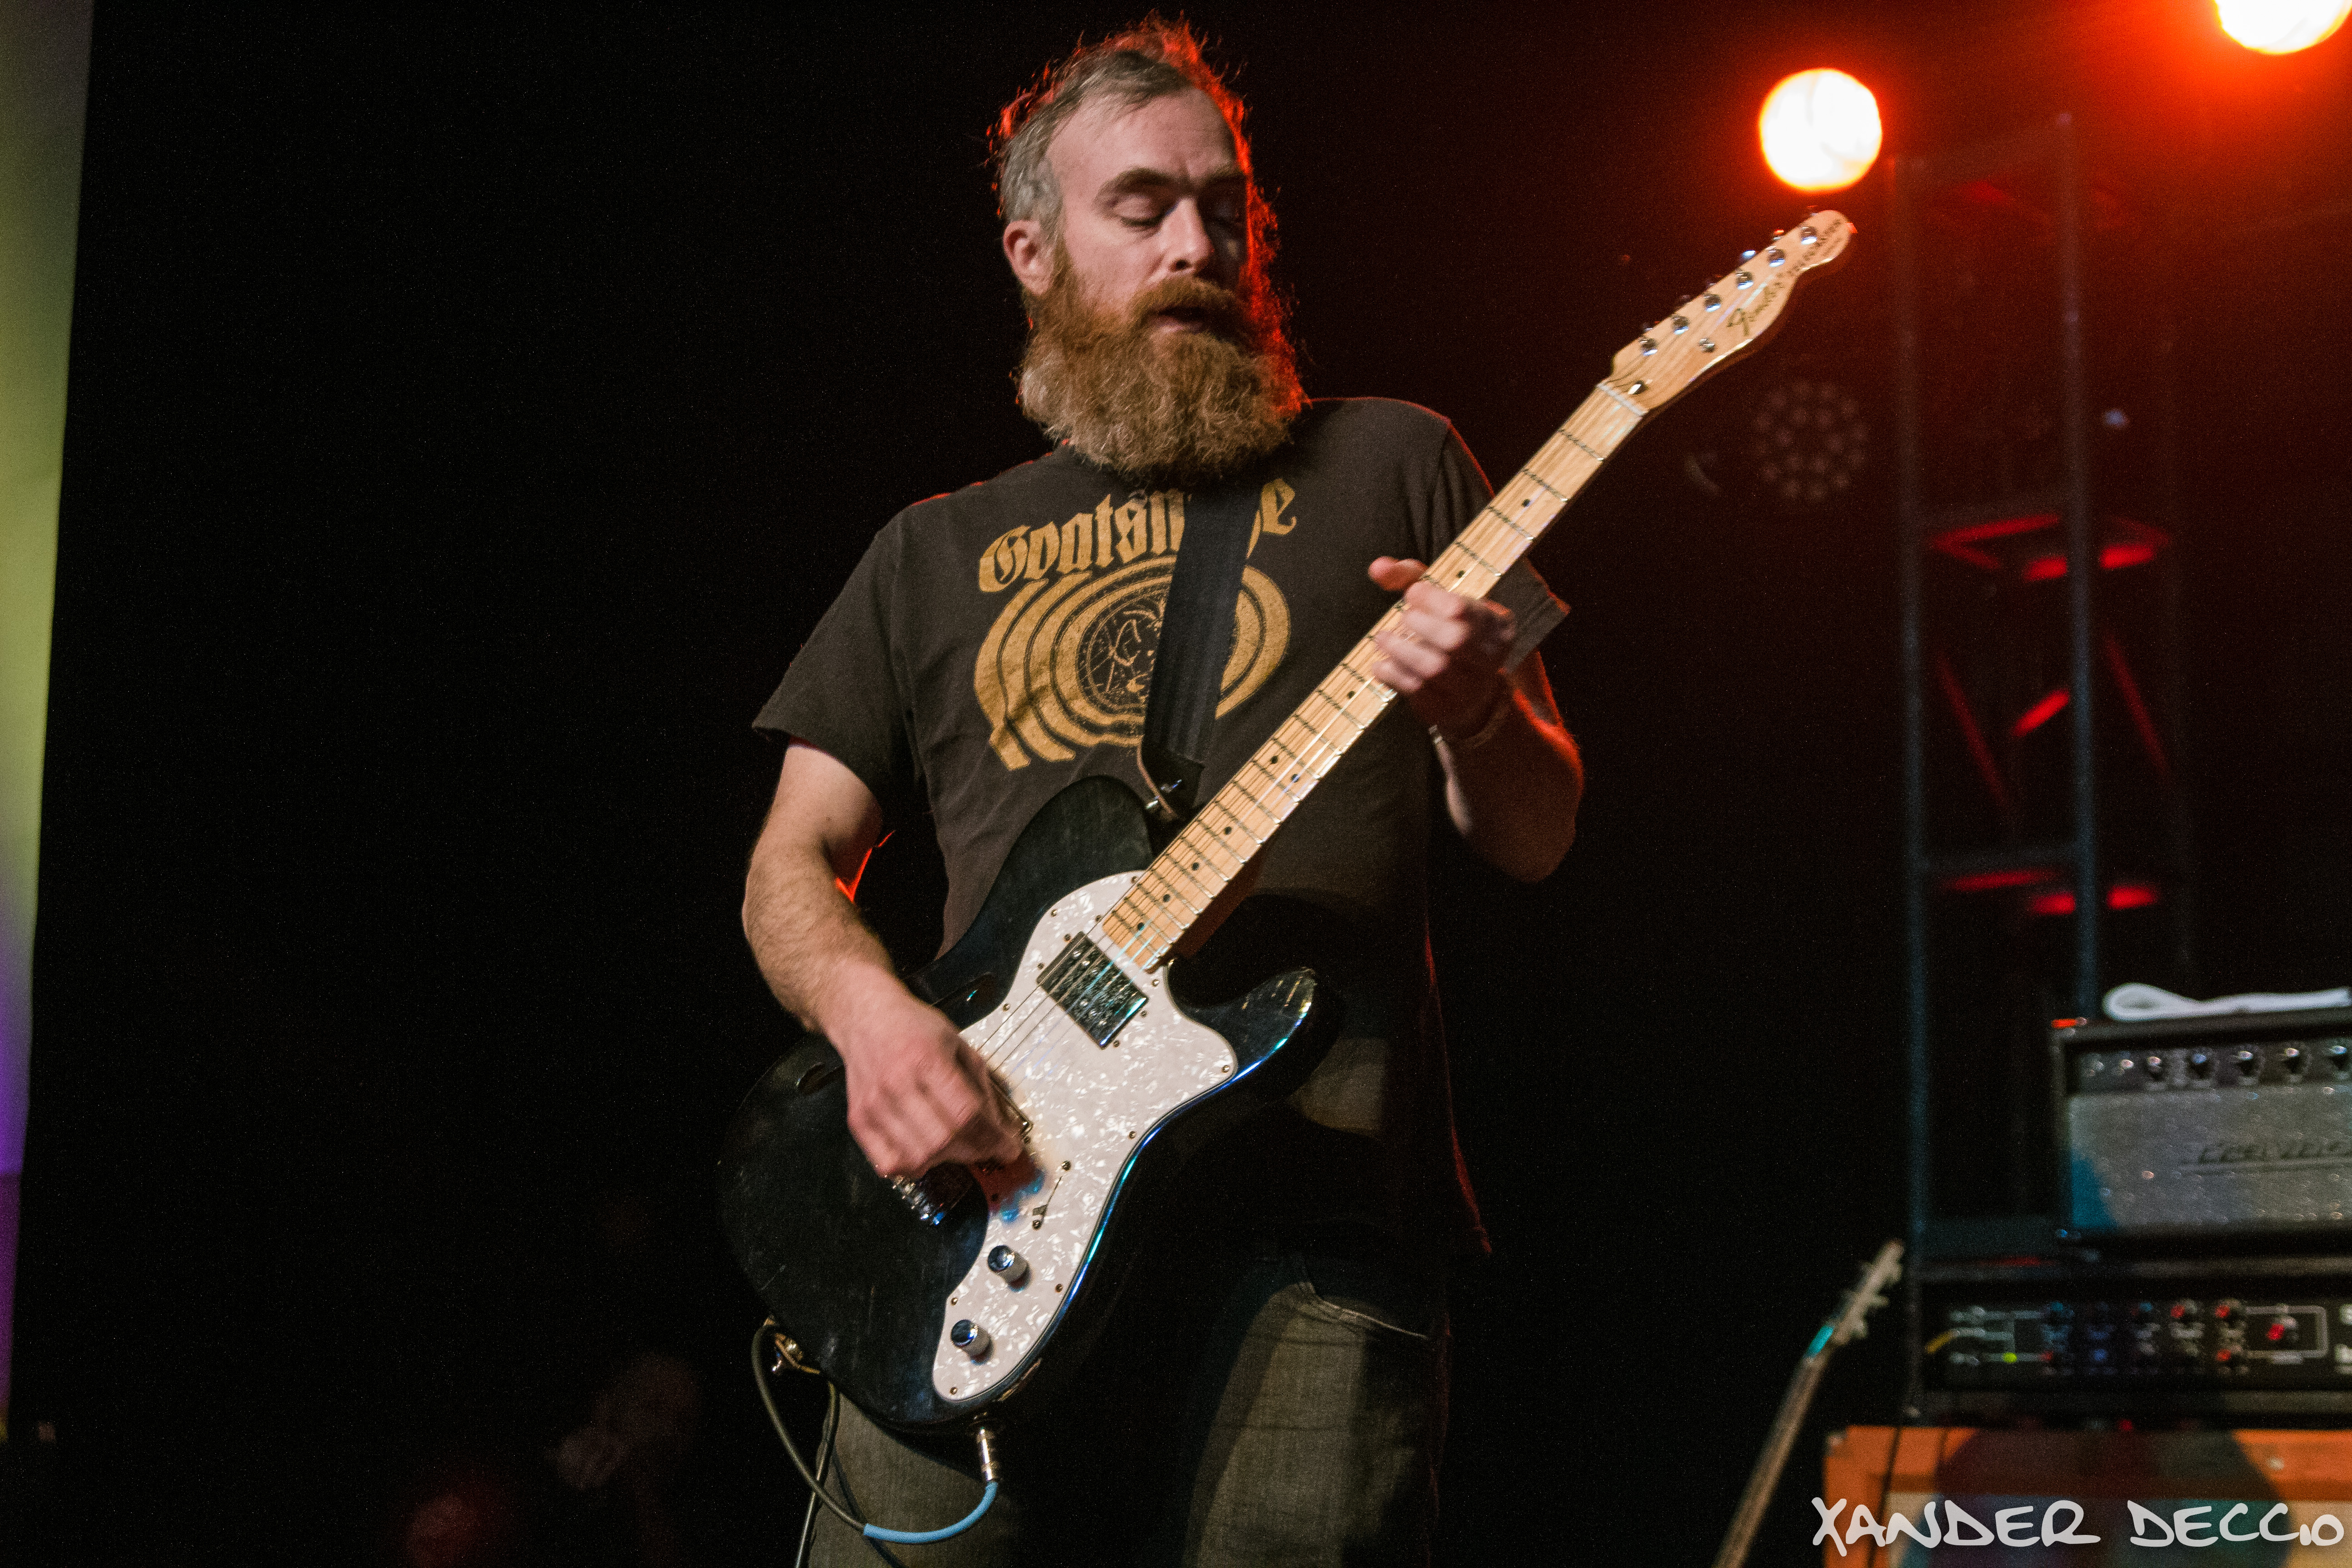 Red Fang at Timbrrr! (Photo by Xander Deccio)